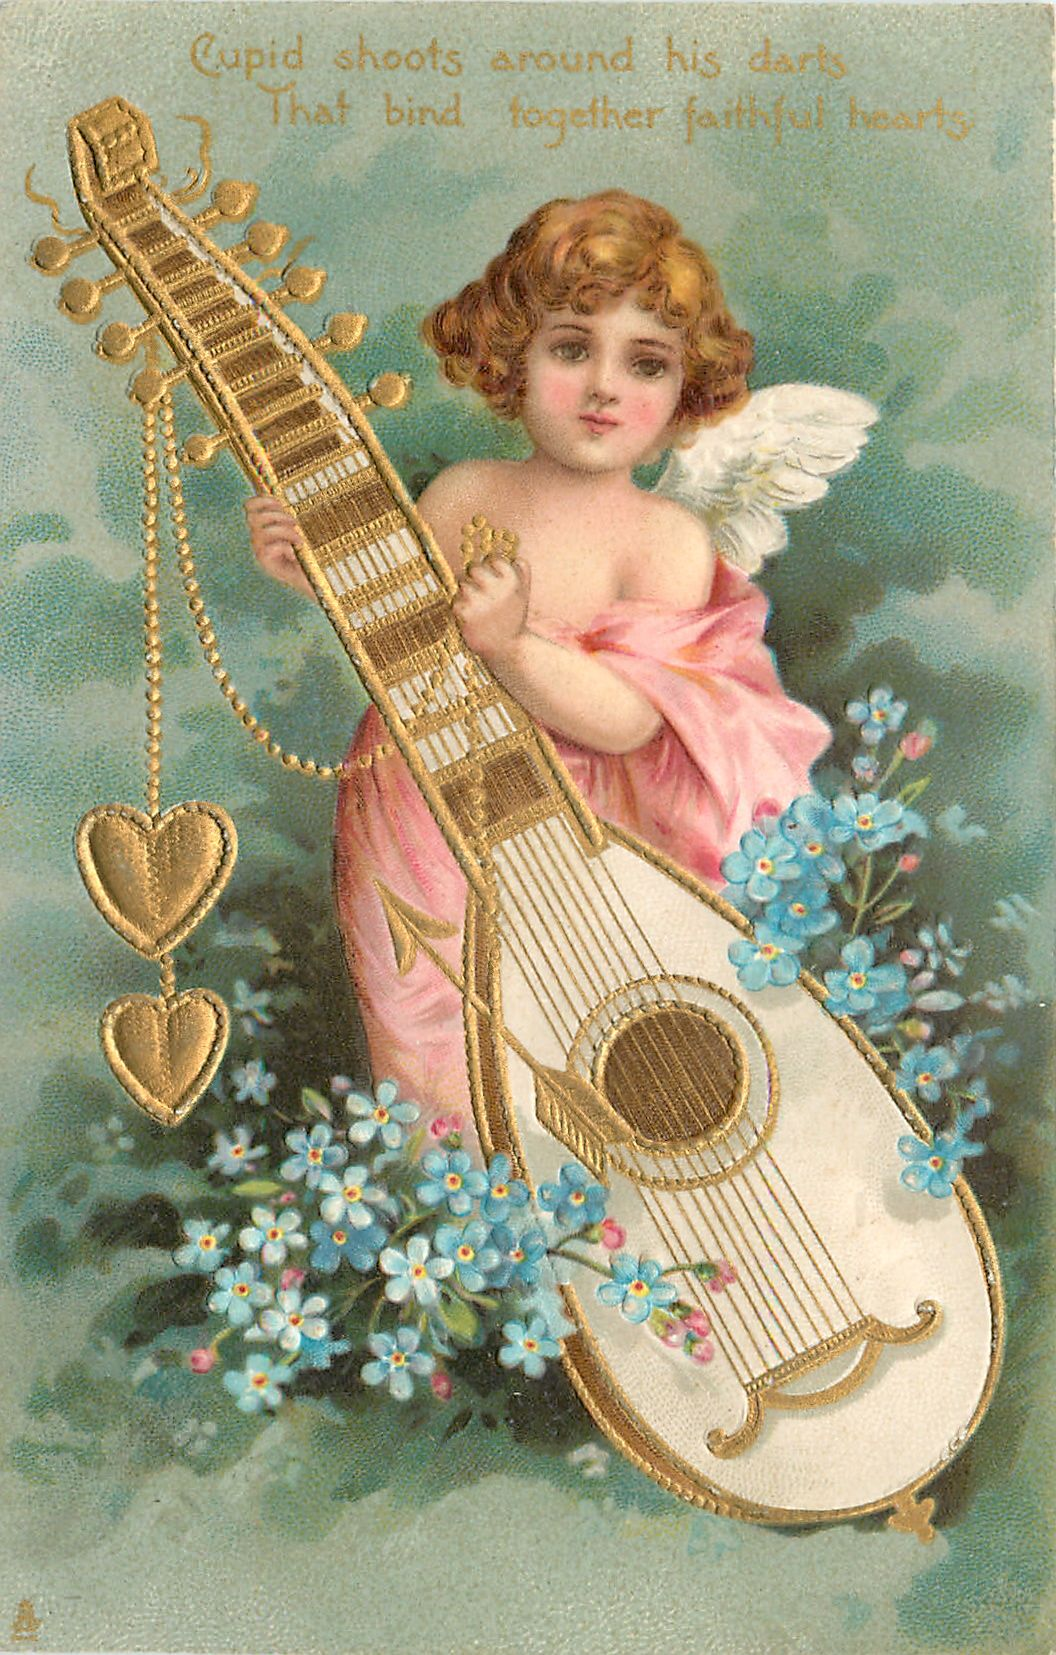 Full Sized Image: CUPID SHOOTS AROUND HIS DARTS THAT BIND TOGETHER FAITHFUL HEARTS cupid supports large lute from which hearts dangle, blue forget-me-nots - TuckDB